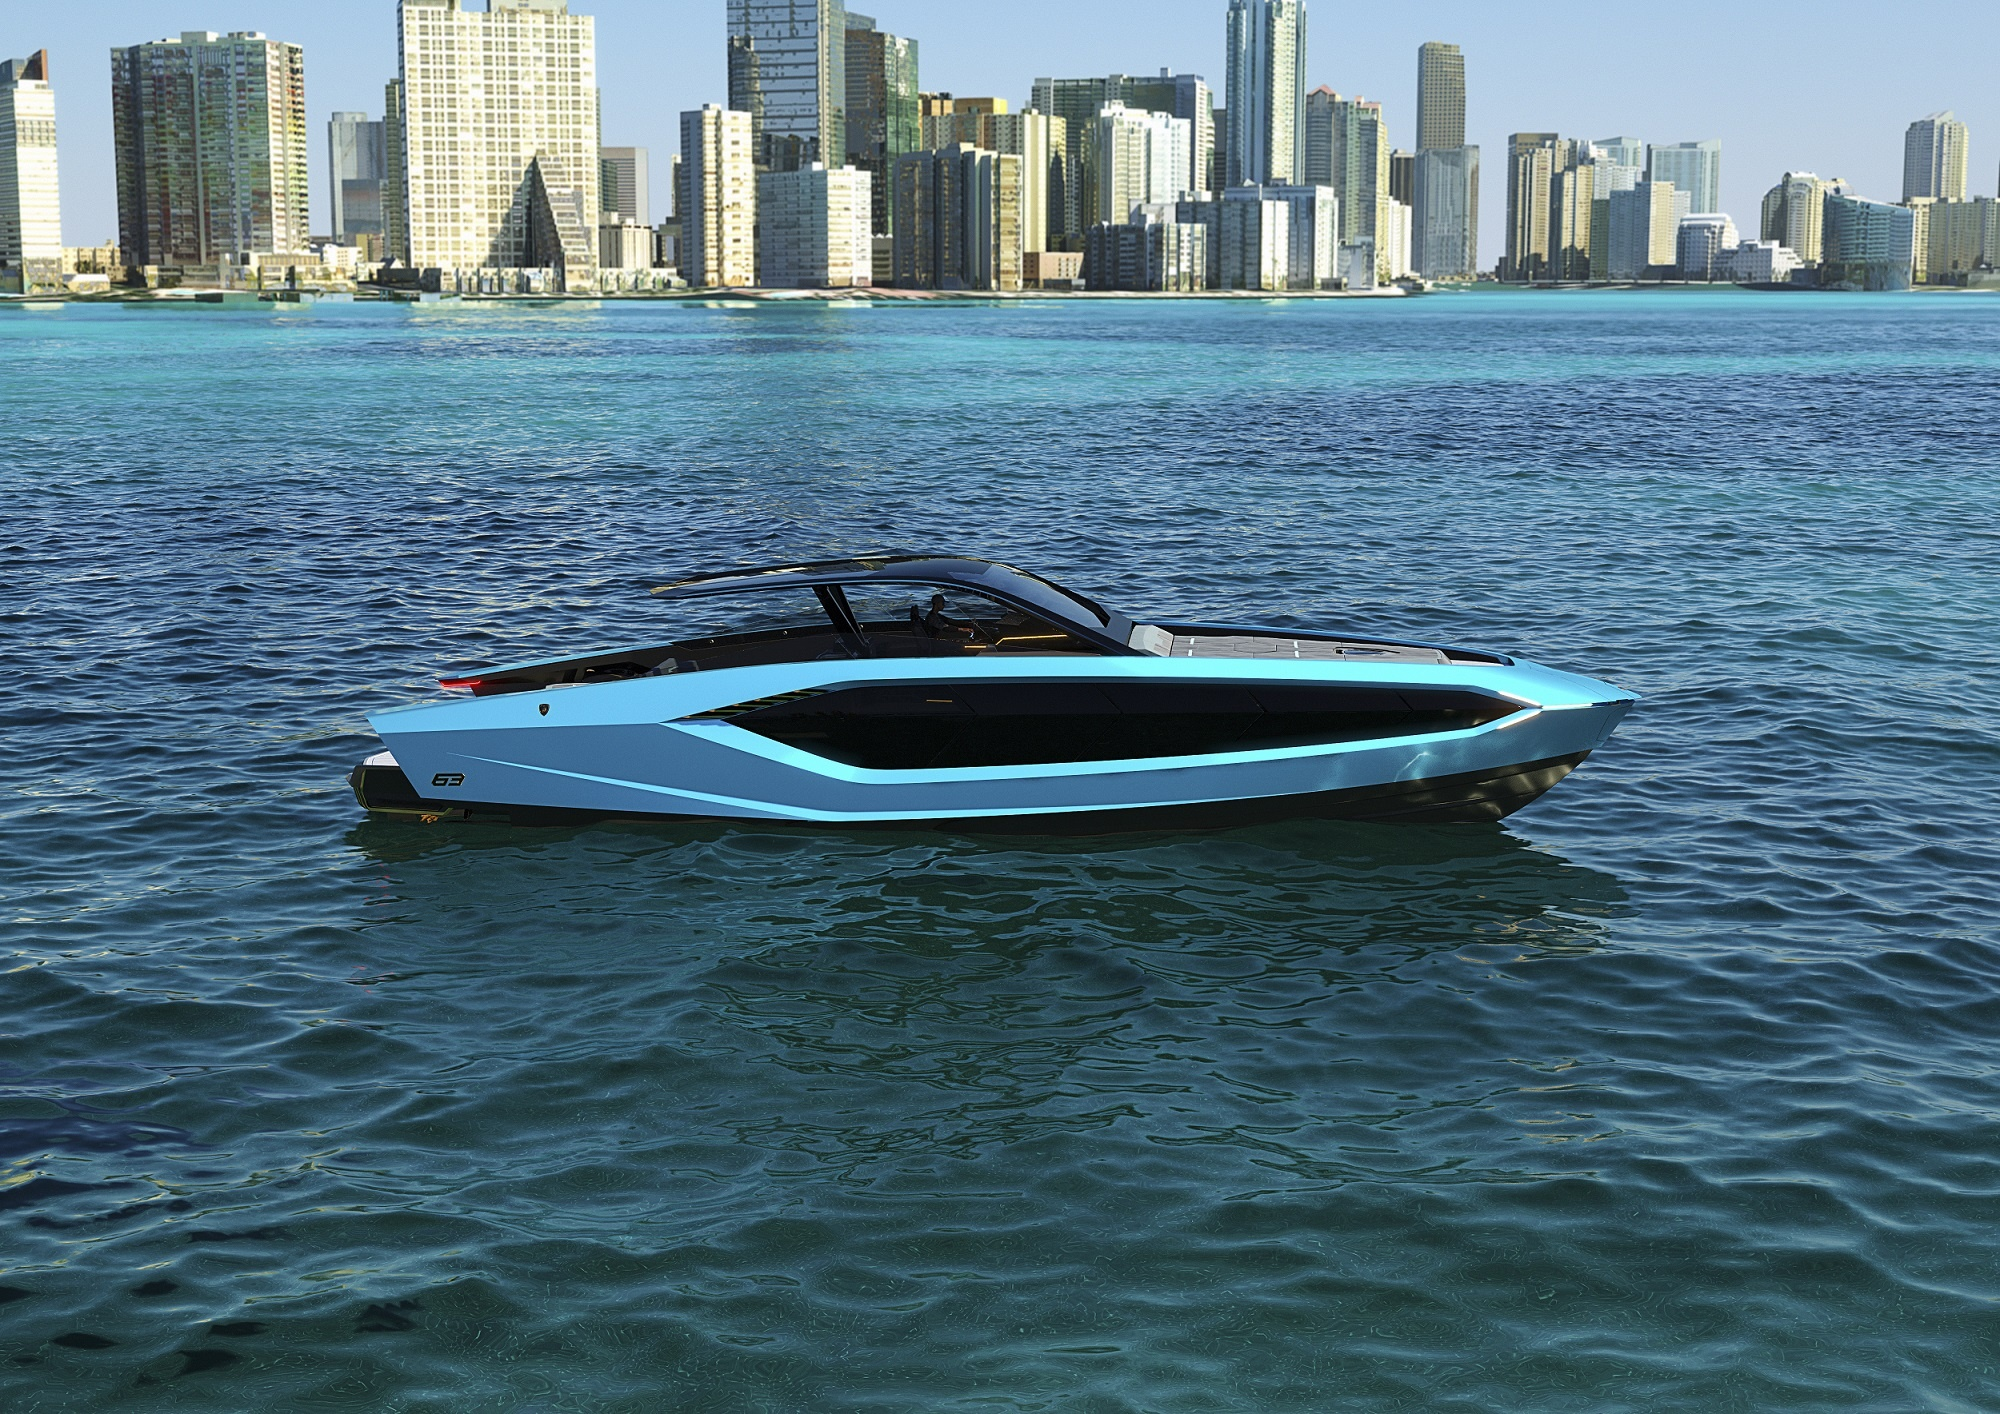 Automobili Lamborghini and The Italian Sea Group unveil the motor yacht 'Tecnomar for Lamborghini 63'